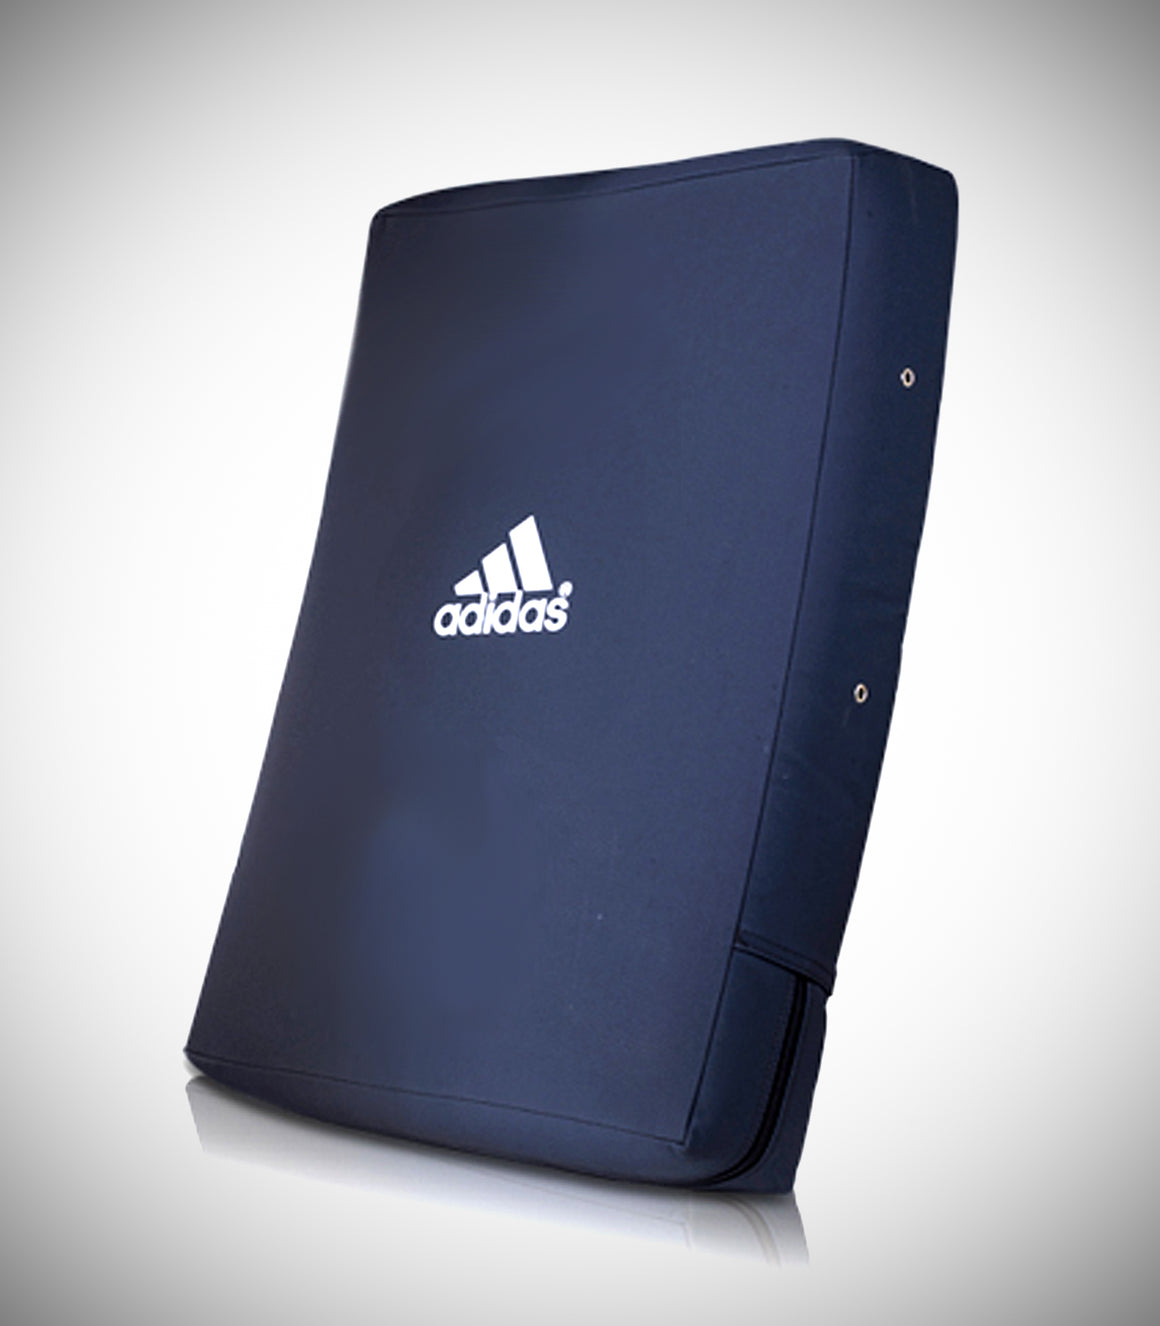 ADIDAS TAEKWONDO STRIKING PAD